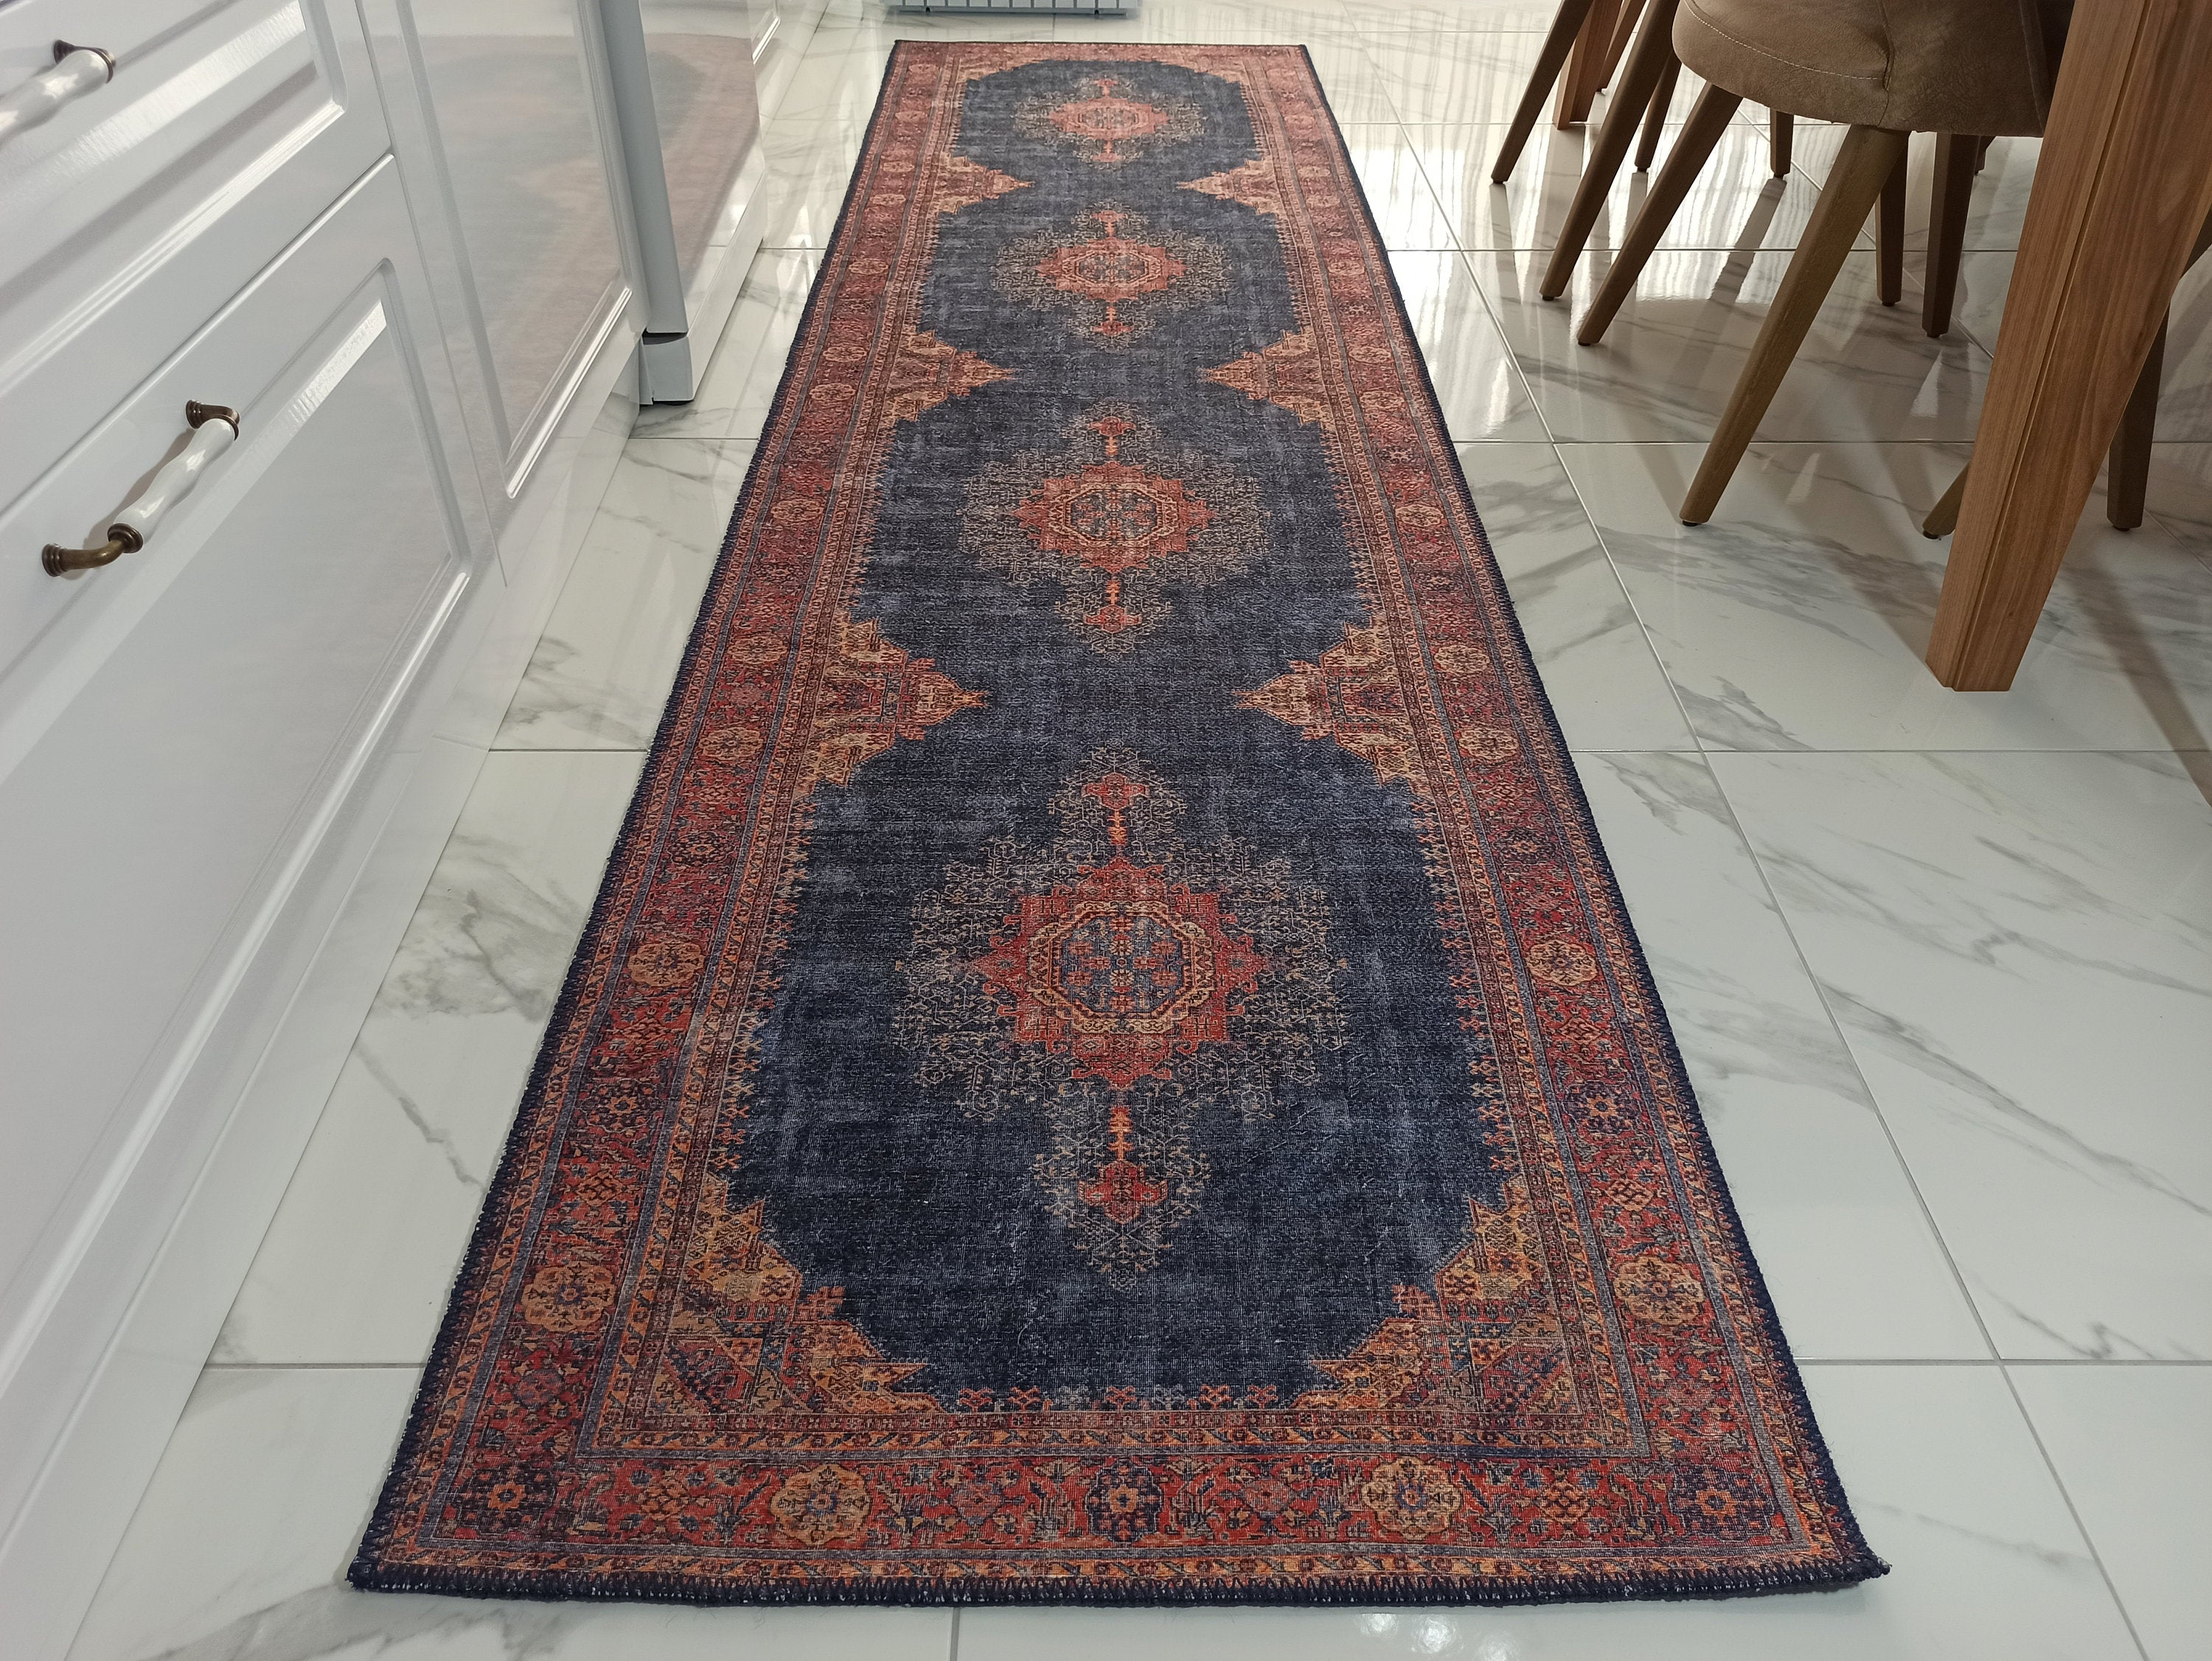 NARGAN Runner | Persian Pattern Oriental Rug, Antique Hand-knotted look, Home decor, Traditional, Art deco Runners, Navy blue, Red, Rugs